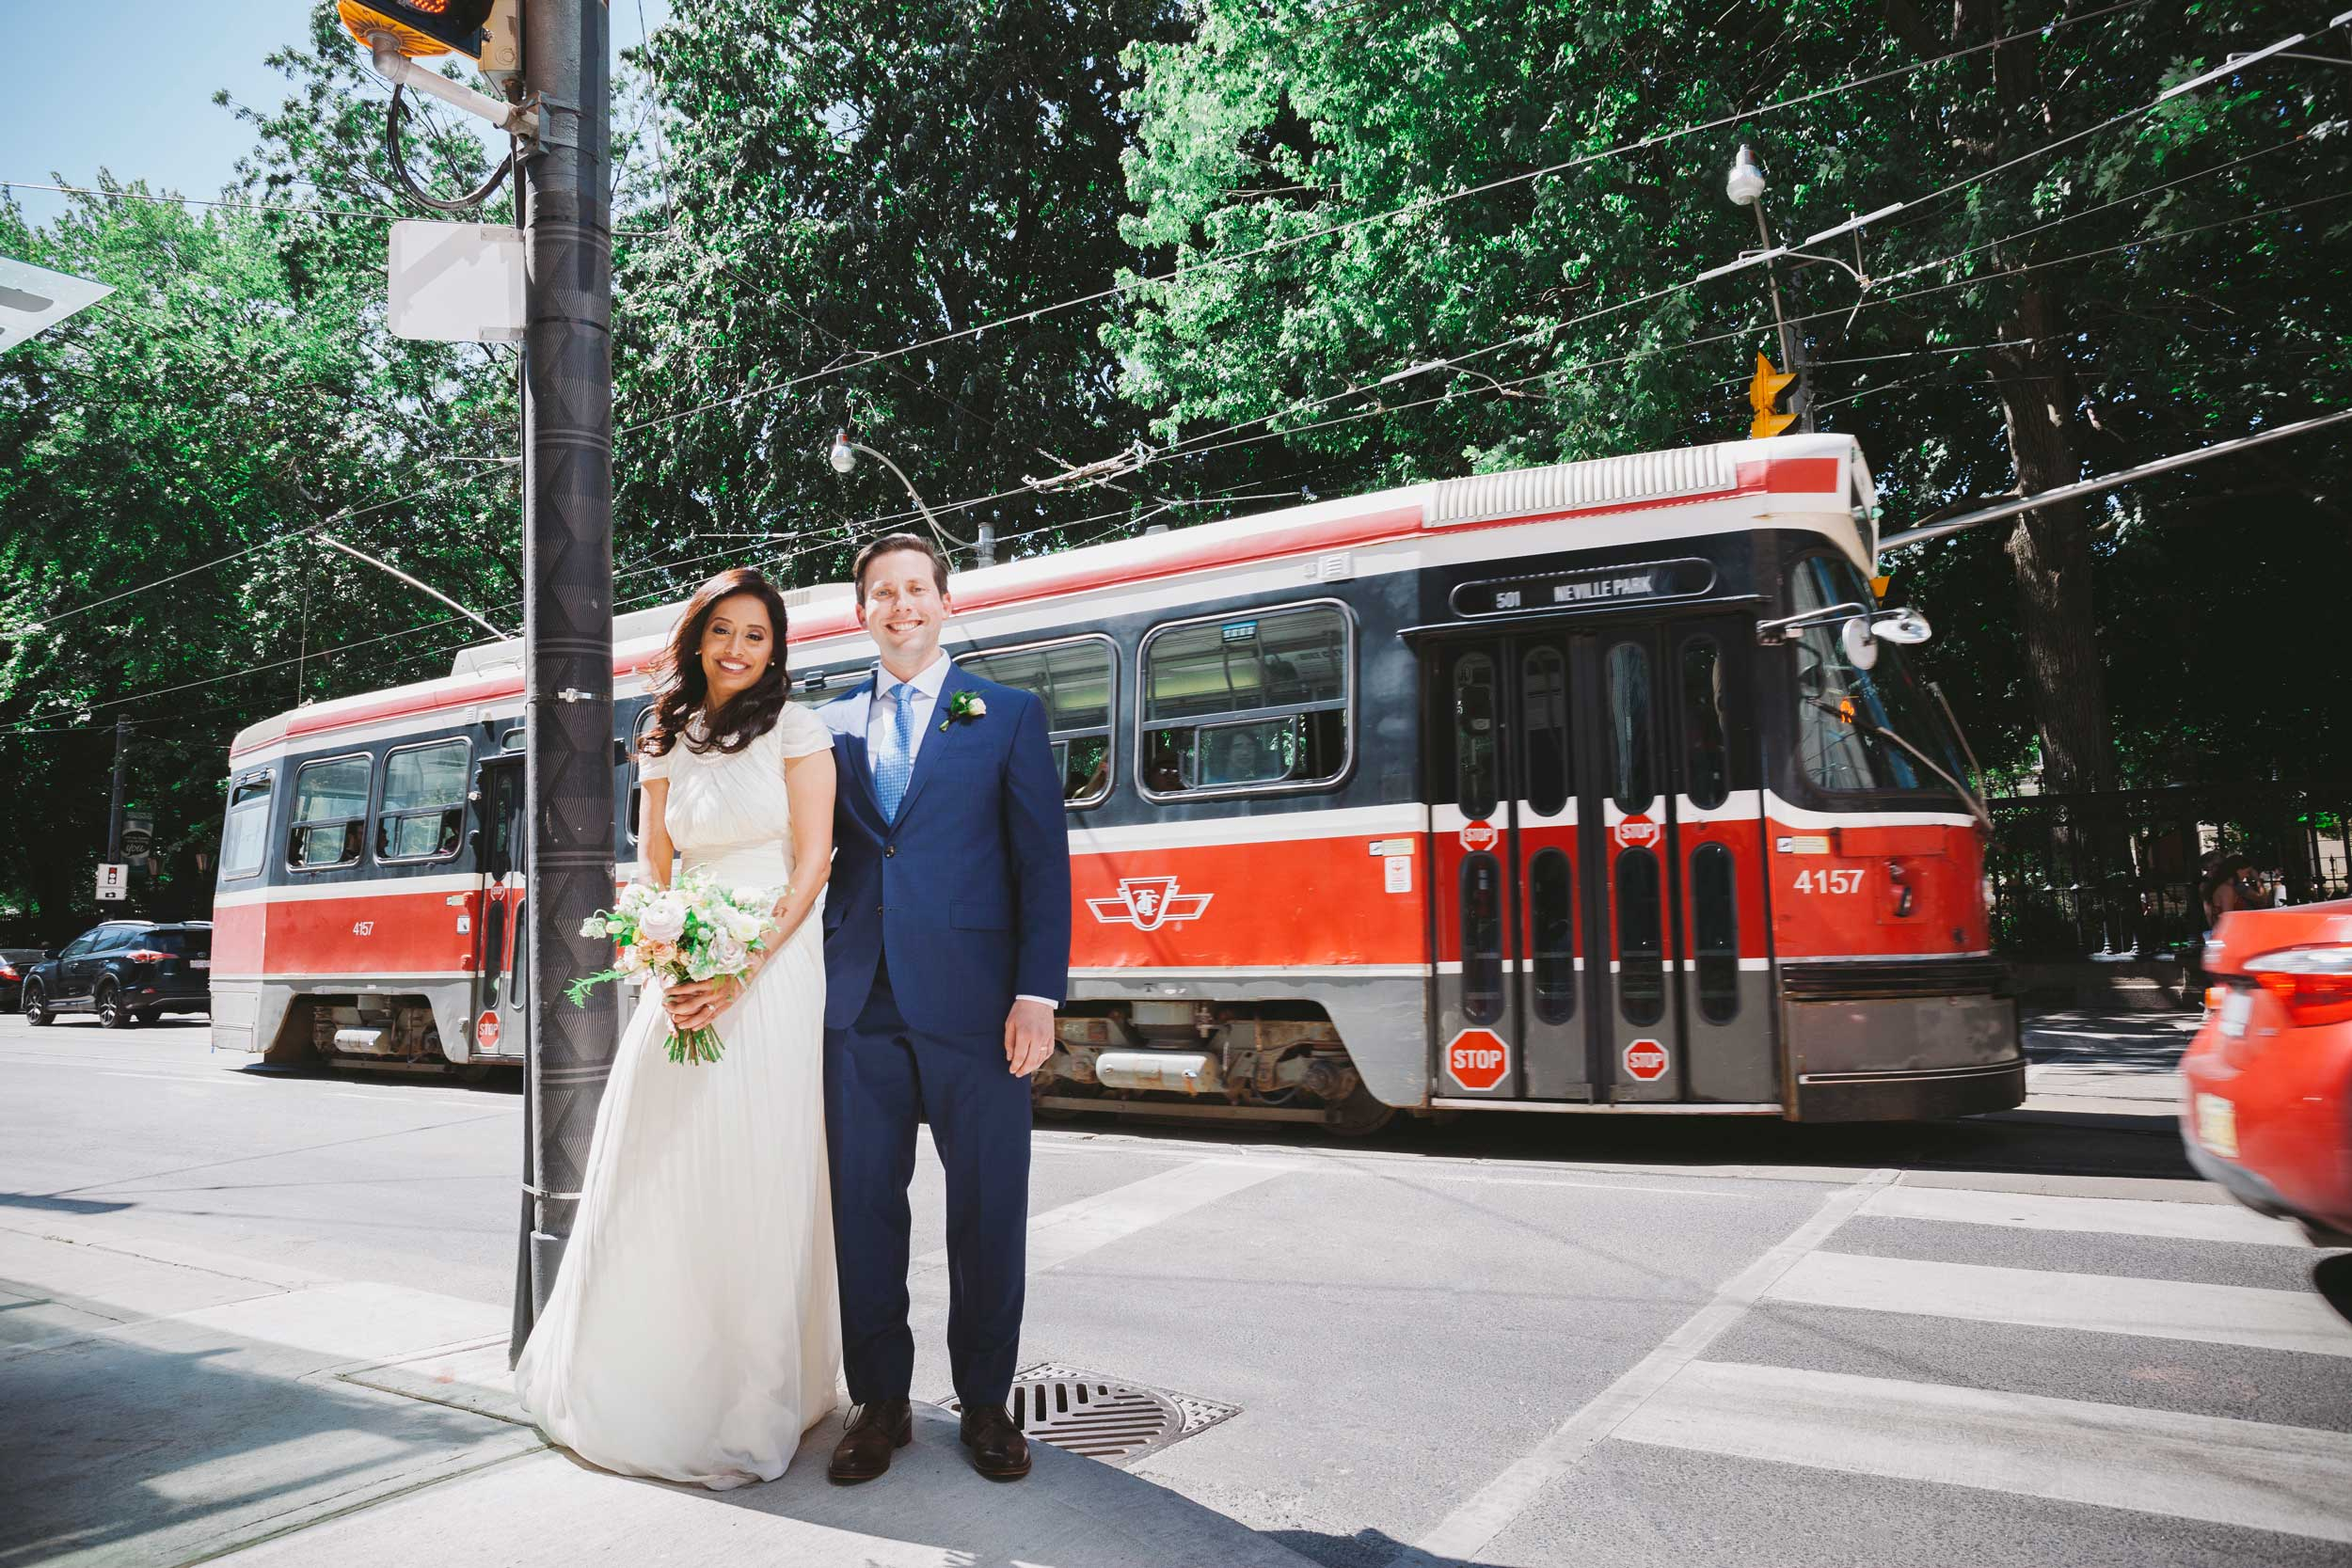 Wedding Photo with the 501 Queen Streetcar in Toronto